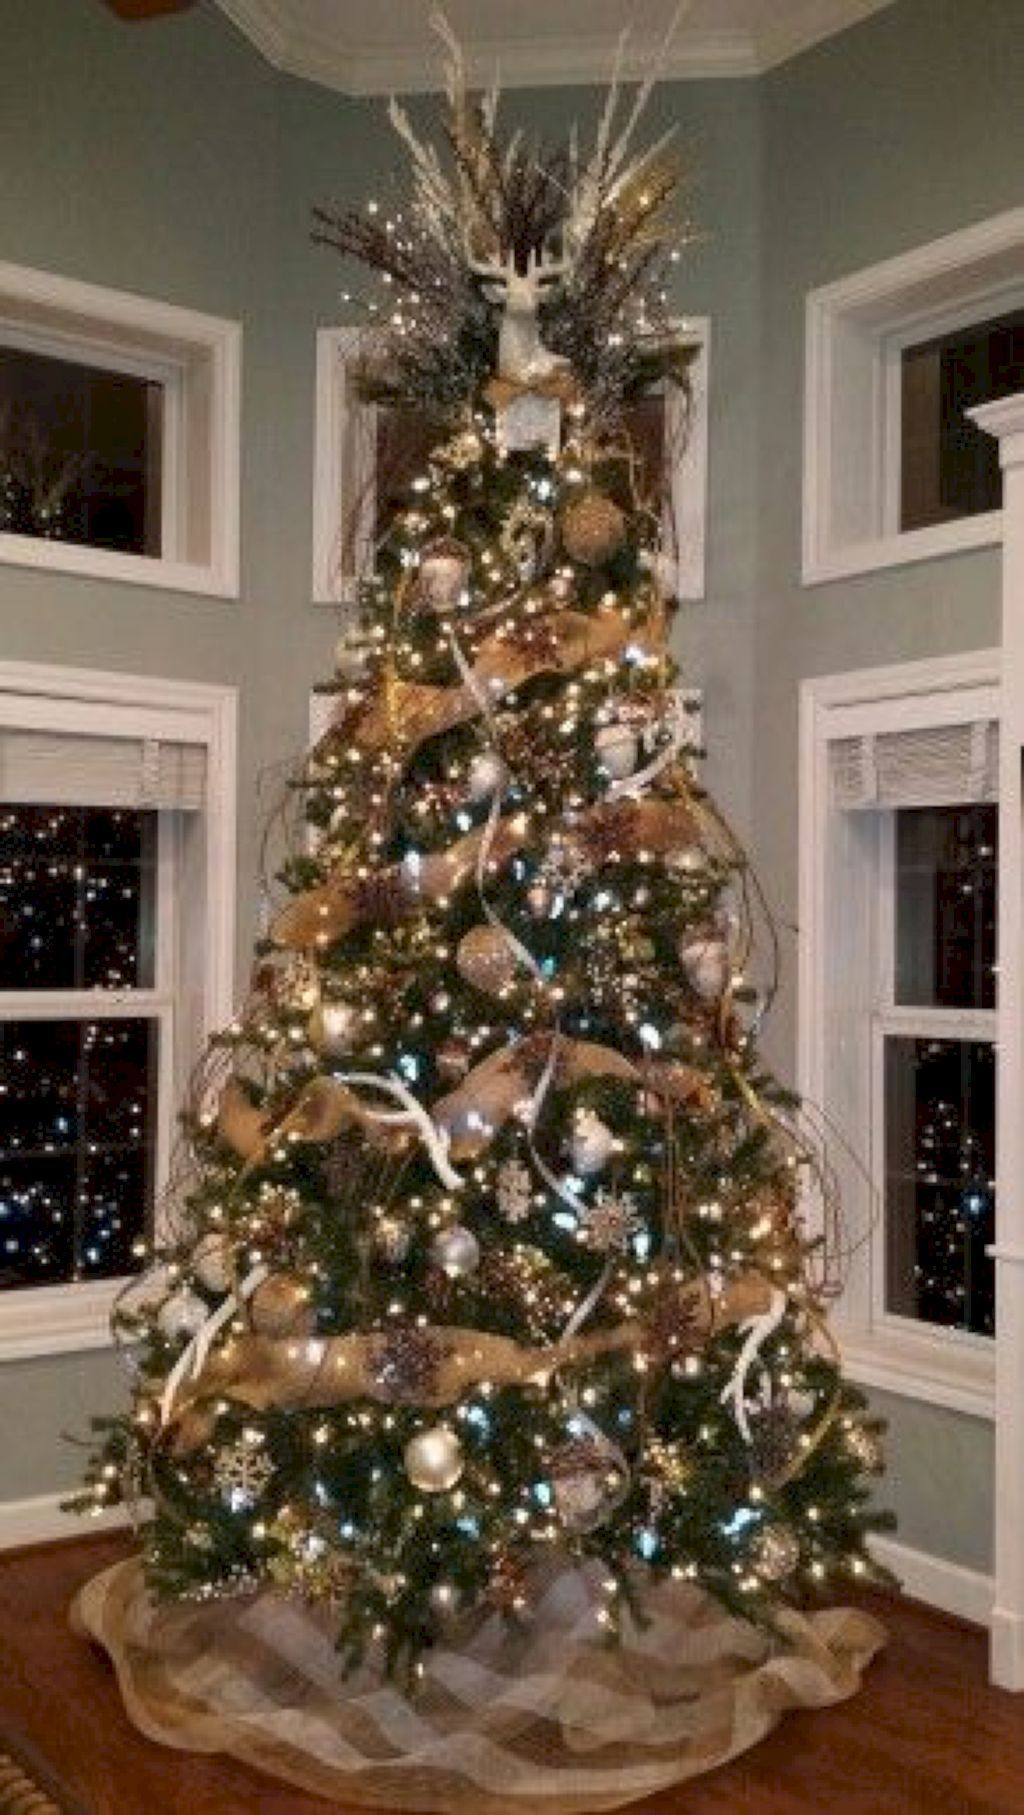 Awesome 45 Beautiful Rustic Christmas Trees Decor Ideas Https Homeideas Co 10545 Christmas Decorations Rustic Tree Burlap Christmas Tree Gold Christmas Tree